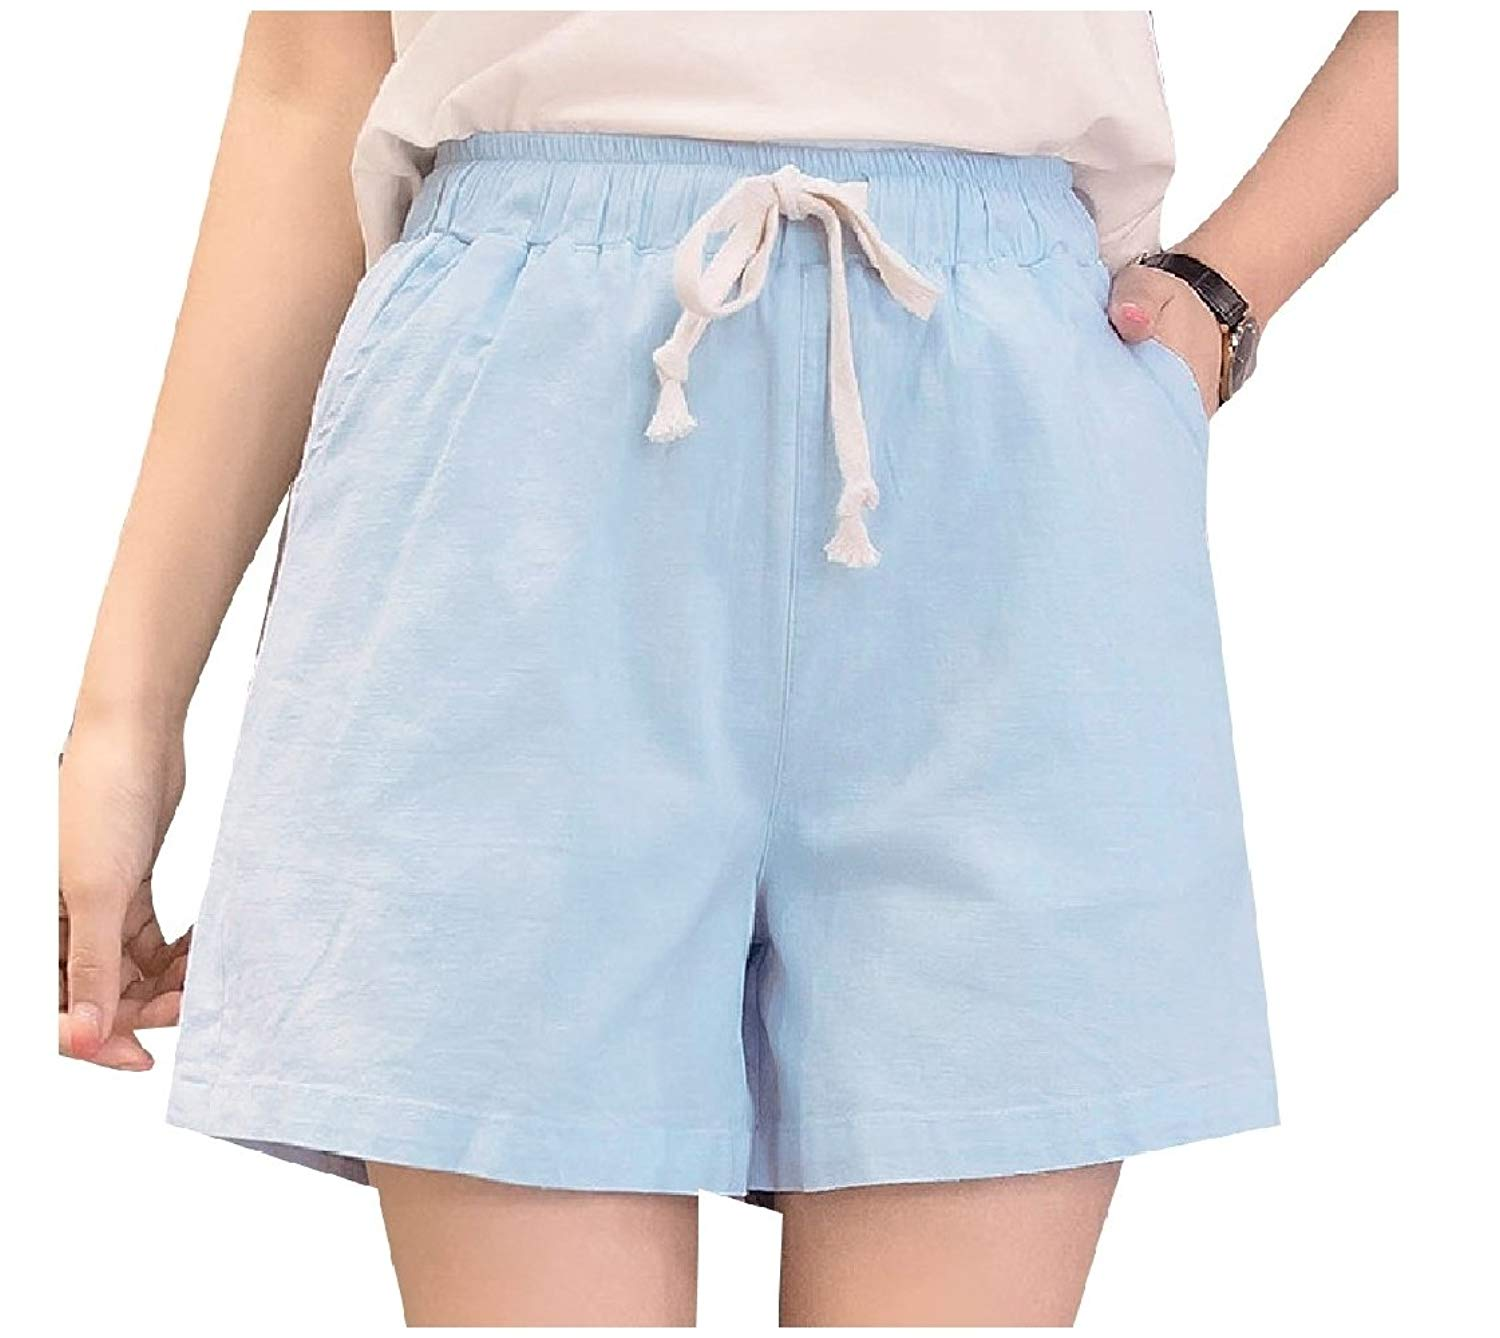 53496f4047 Get Quotations · Fieer Women s Wide Legs Plus Size Elastic Waist Board  Shorts Linen Baggy Shorts